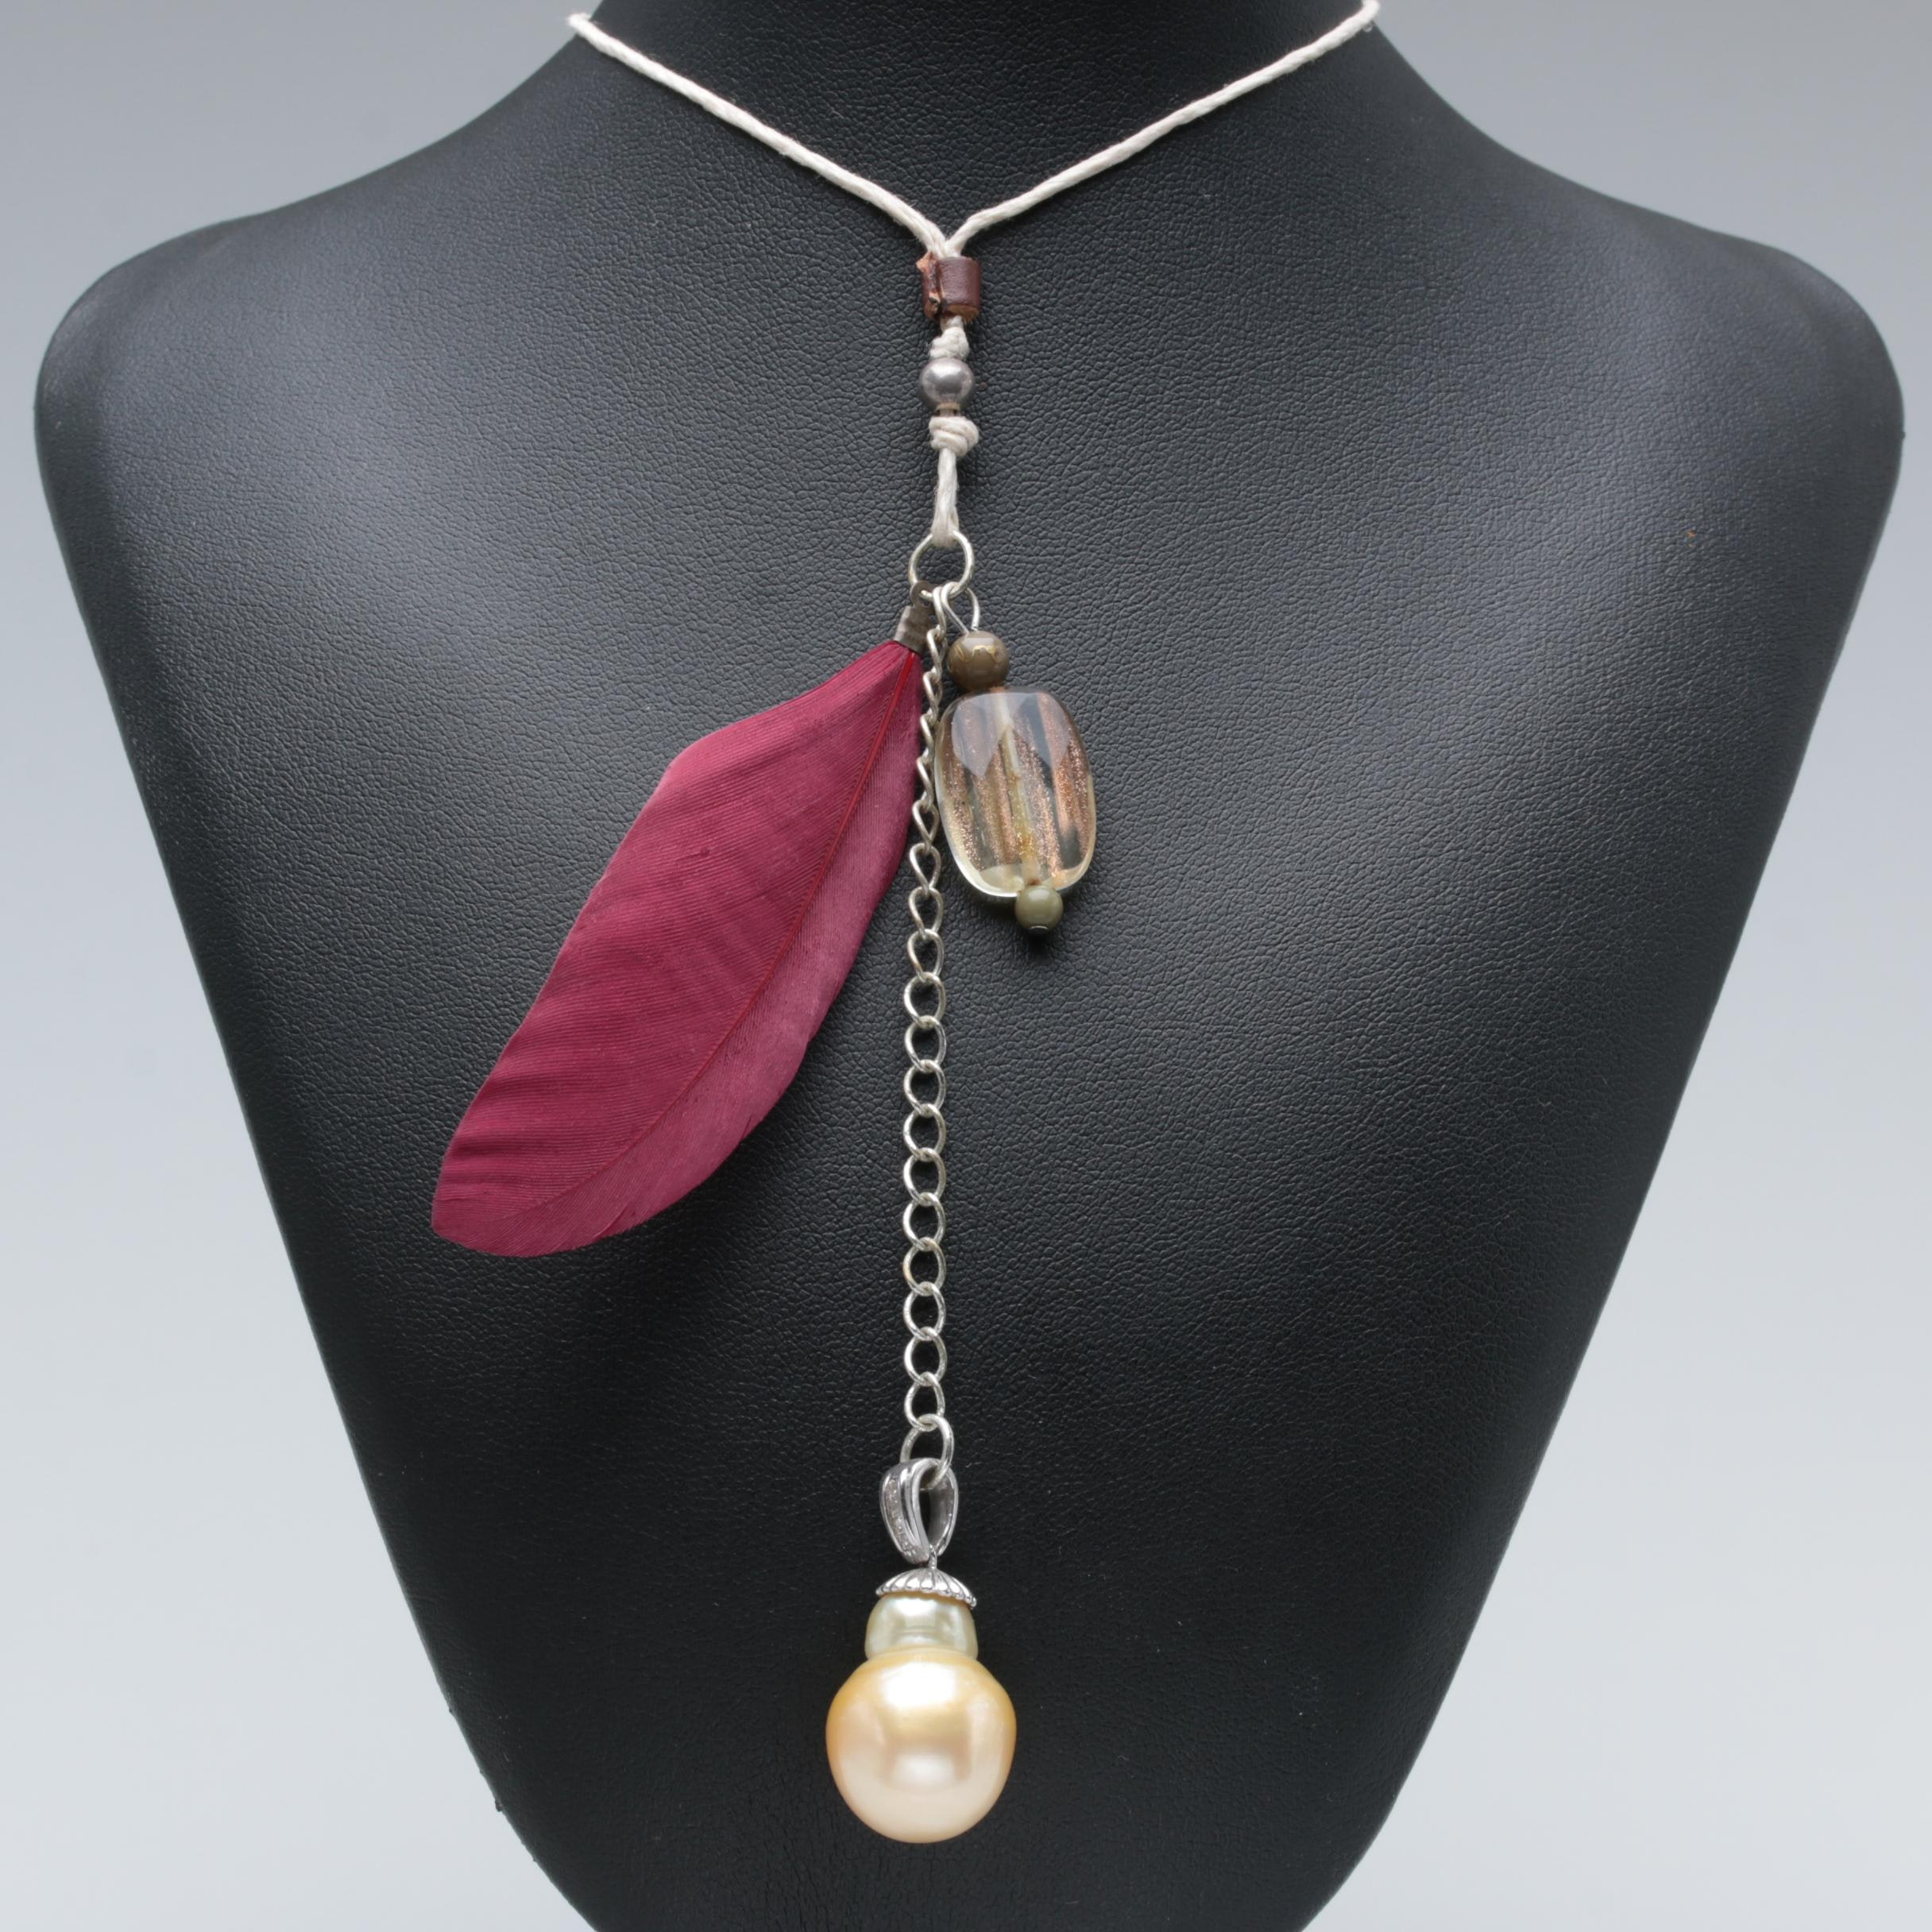 Assemblage Necklace Featuring Glass Bead and Sterling Cultured Pearl Pendant